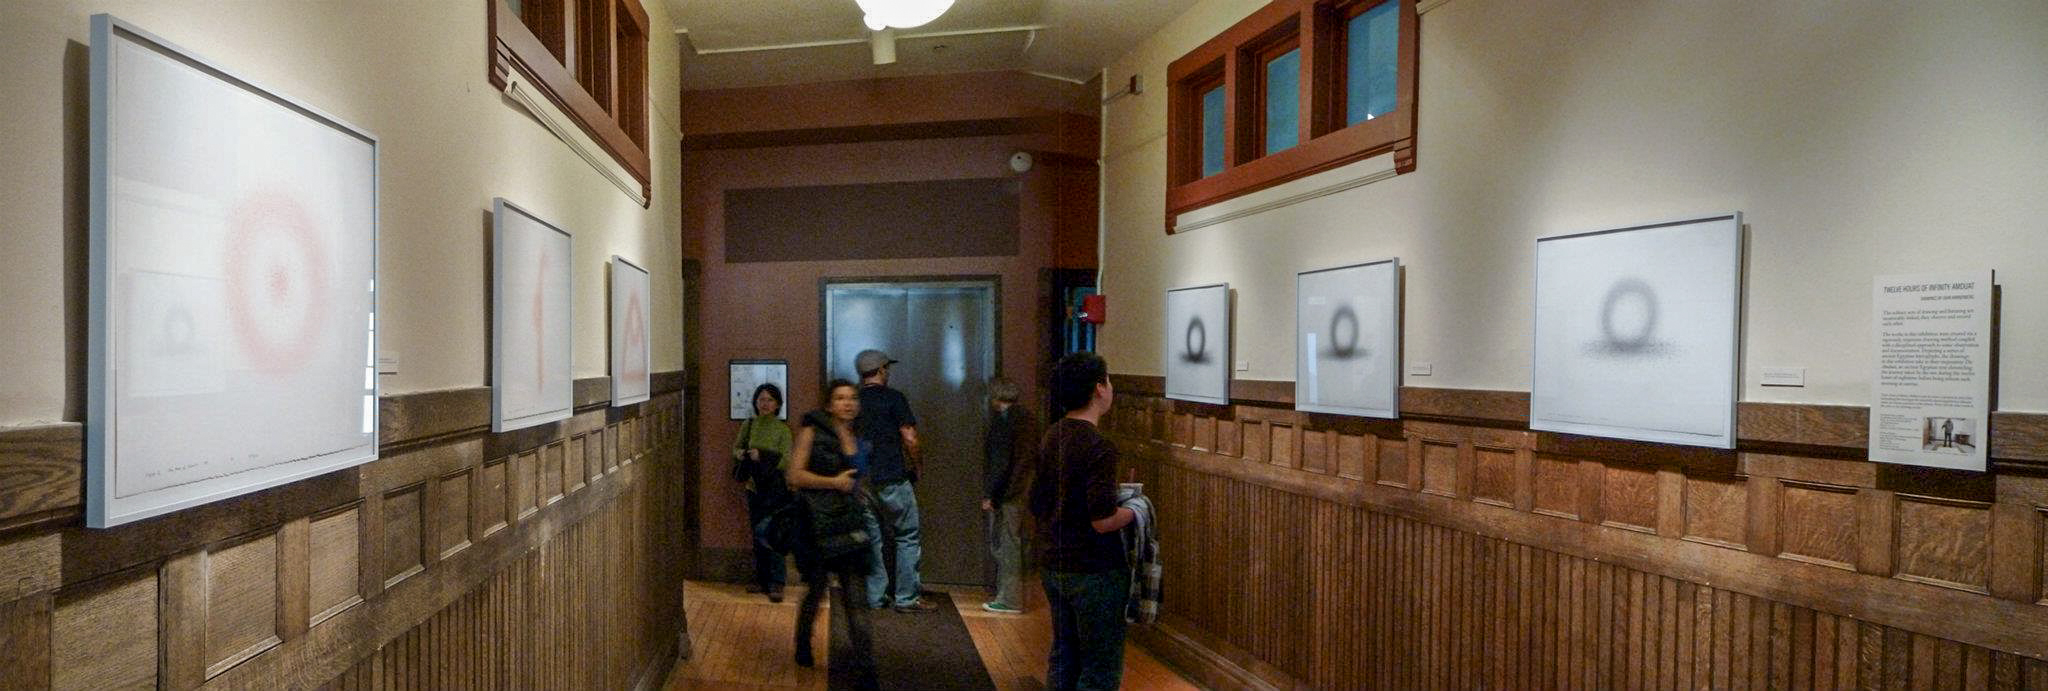 The exhibition installed in the Kelsey Museum of Archaeology.